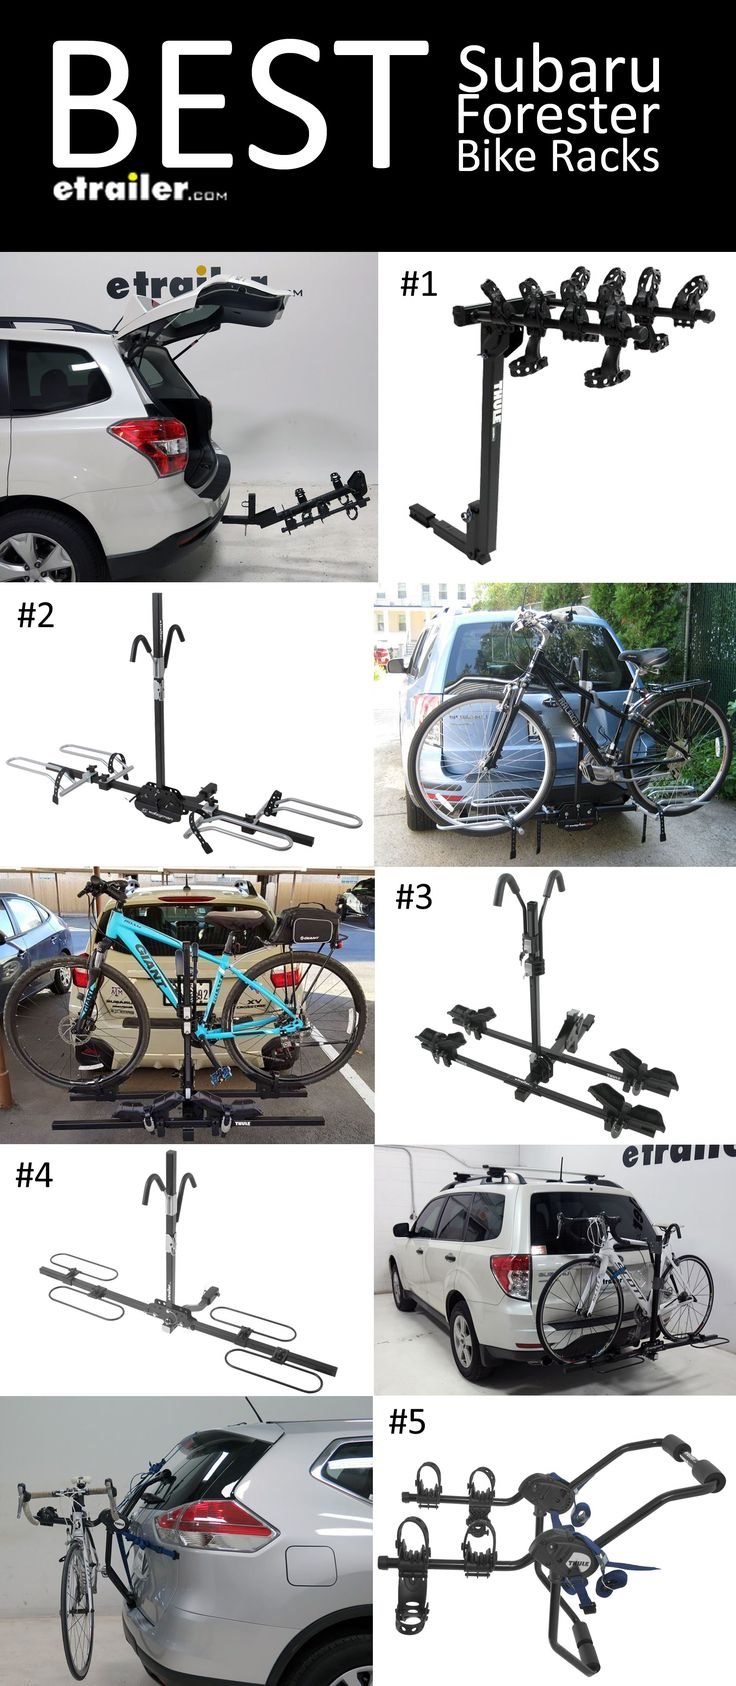 Thule hitching post pro folding tilting 4 bike rack w anti sway swagman platform rack thule doubletrack platform style 2 bike rack swagman xc rack